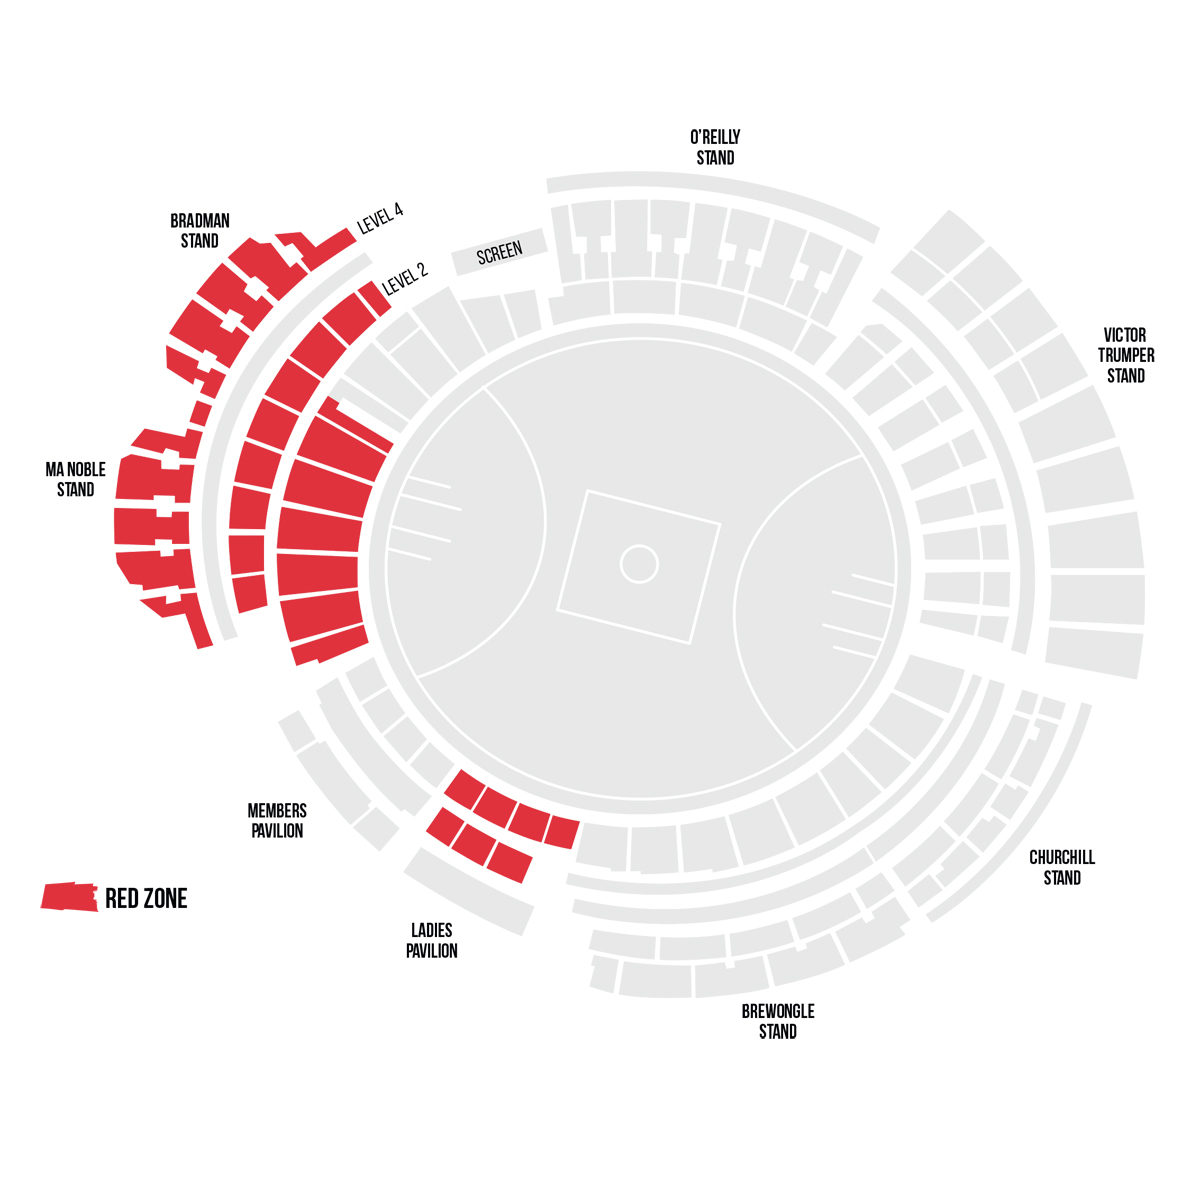 Scg Seating Map Sydney Swans | Facebook